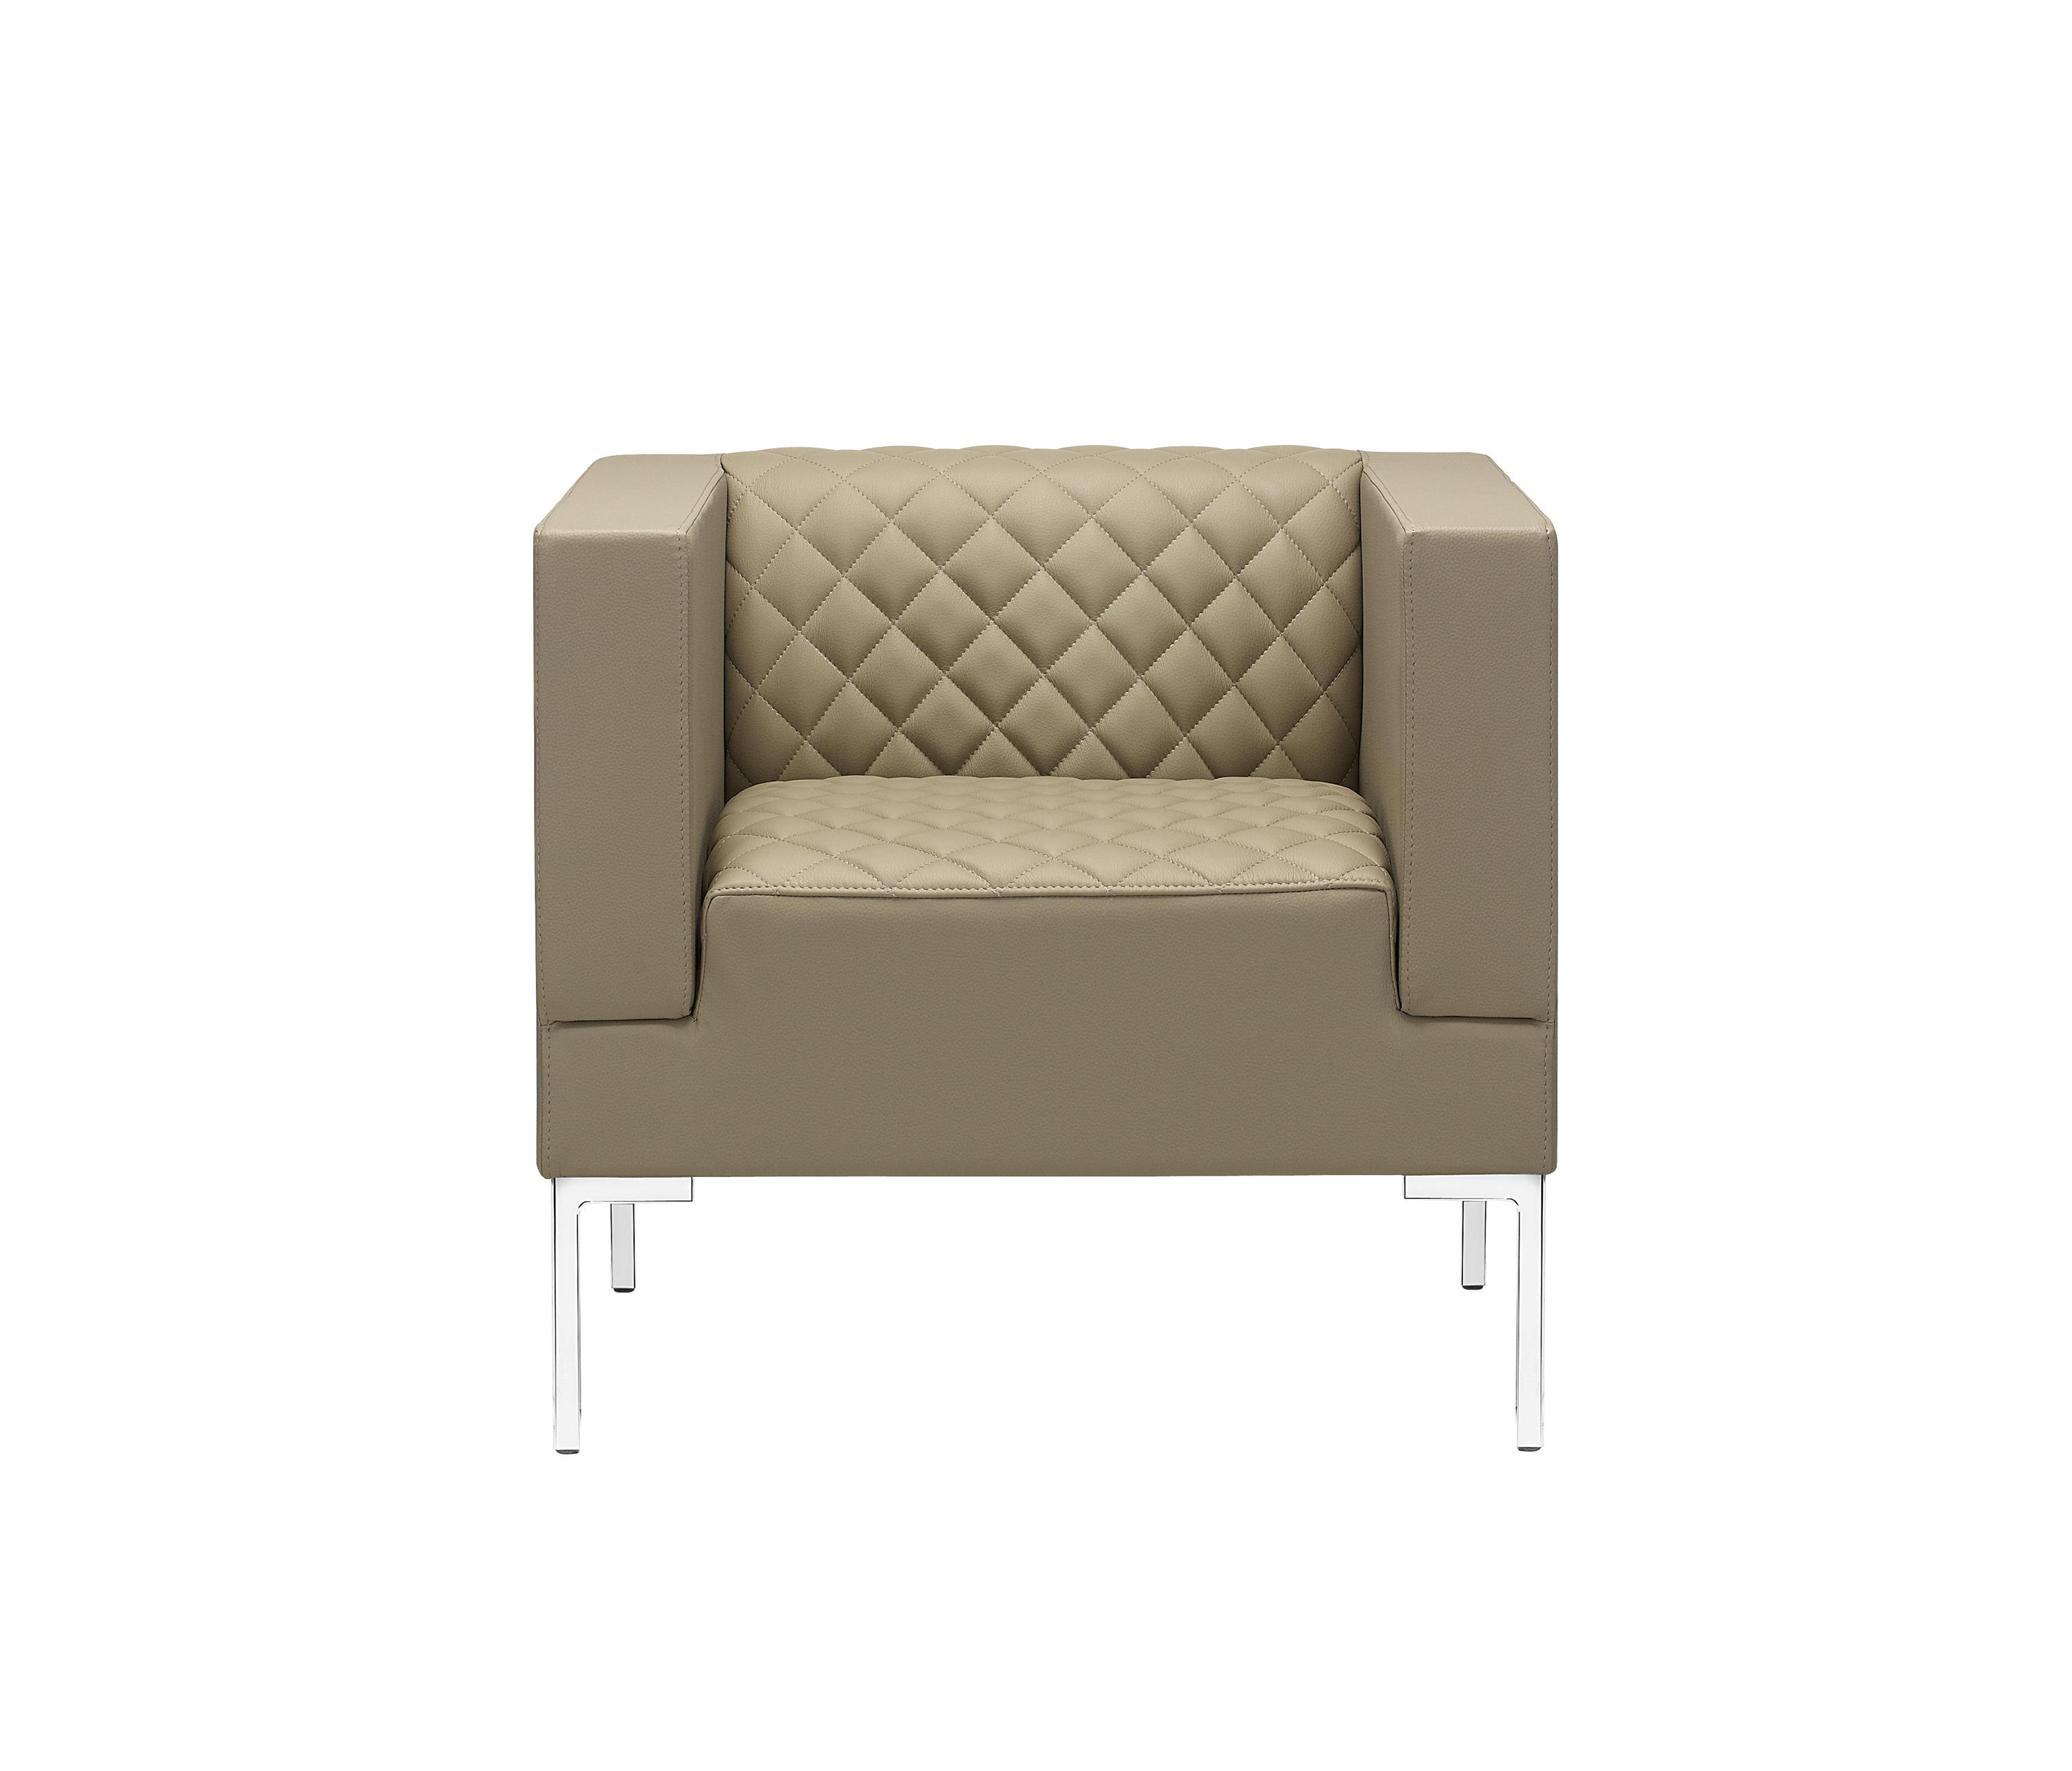 Sessel Matrix Matrix Armchair Sessel Von Sitland Architonic